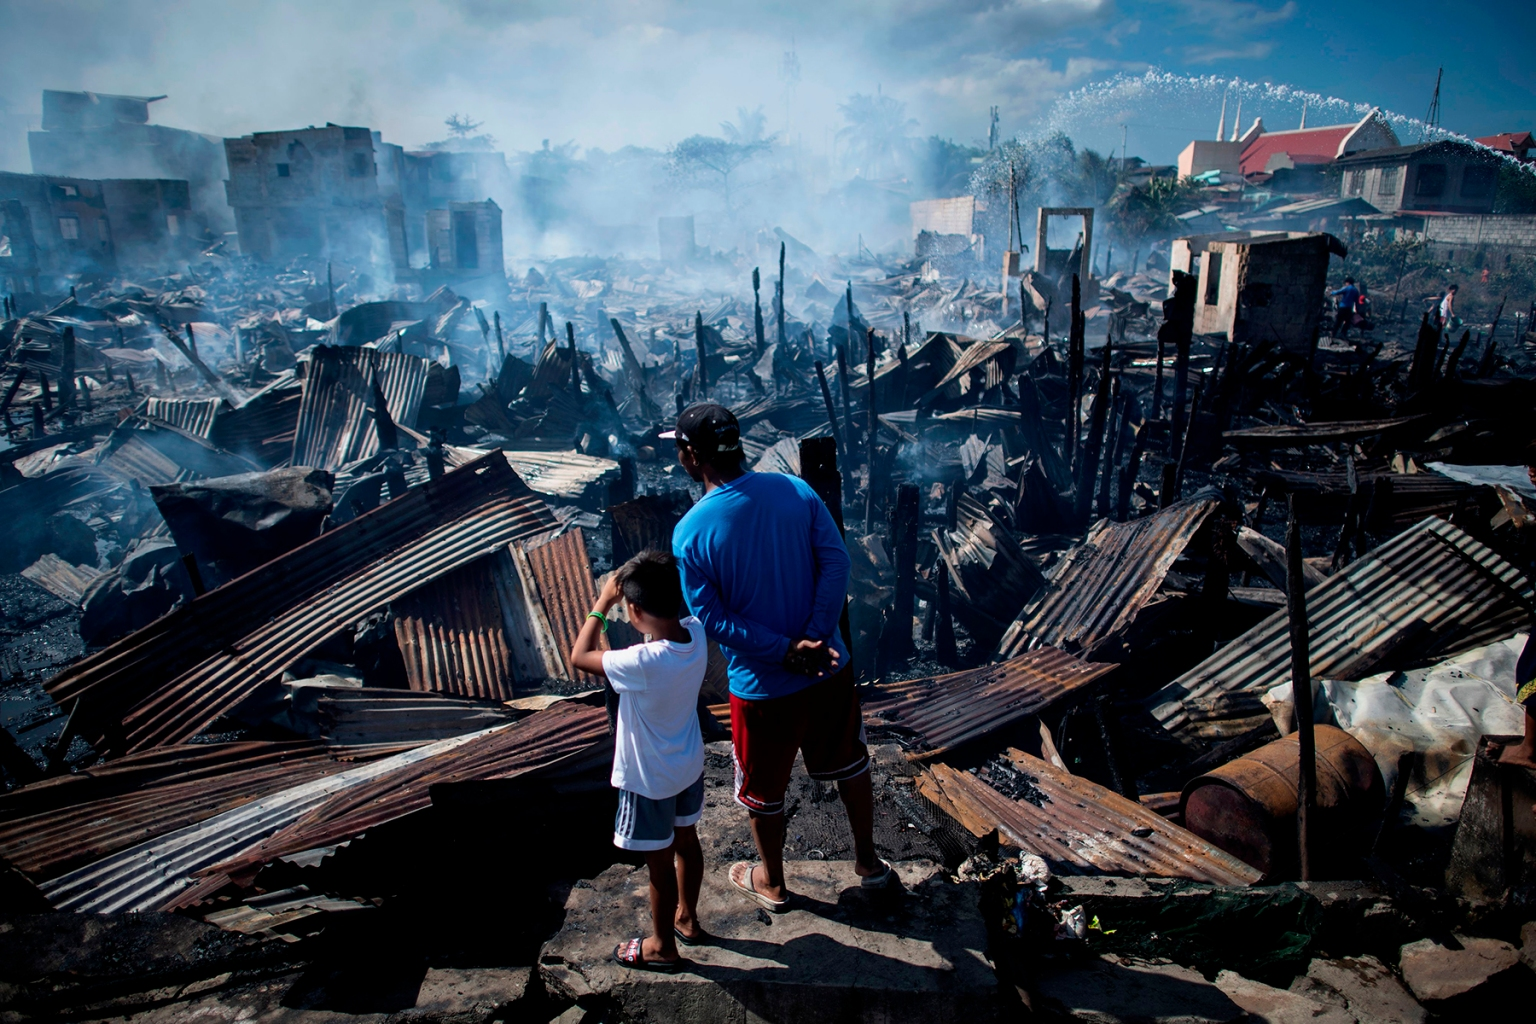 Residents look at destroyed houses after a fire engulfed a Navotas slum along Manila Bay in the Philippines on Nov. 8. Some 150 families were affected by the fire. NOEL CELIS/AFP/Getty Images